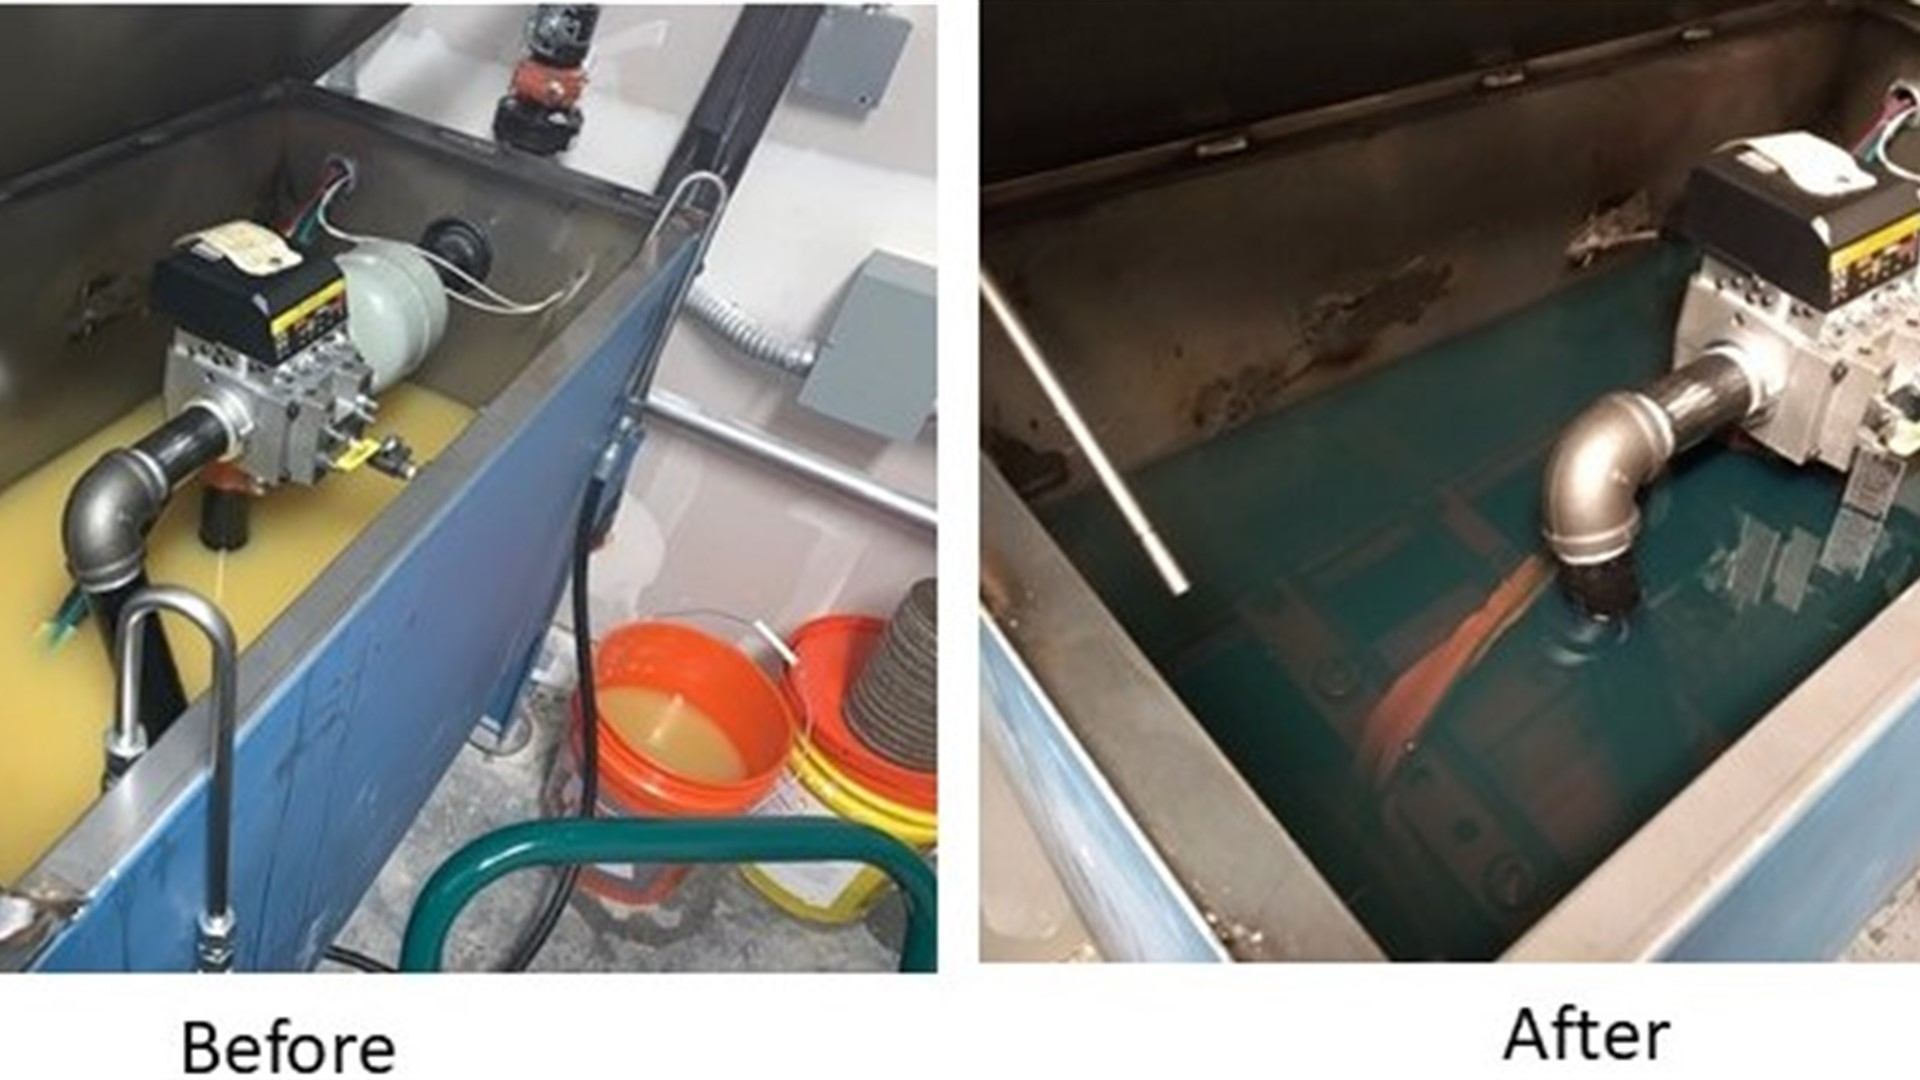 Water Removal using the Oil Scrubber on a Hydraulic Elevator